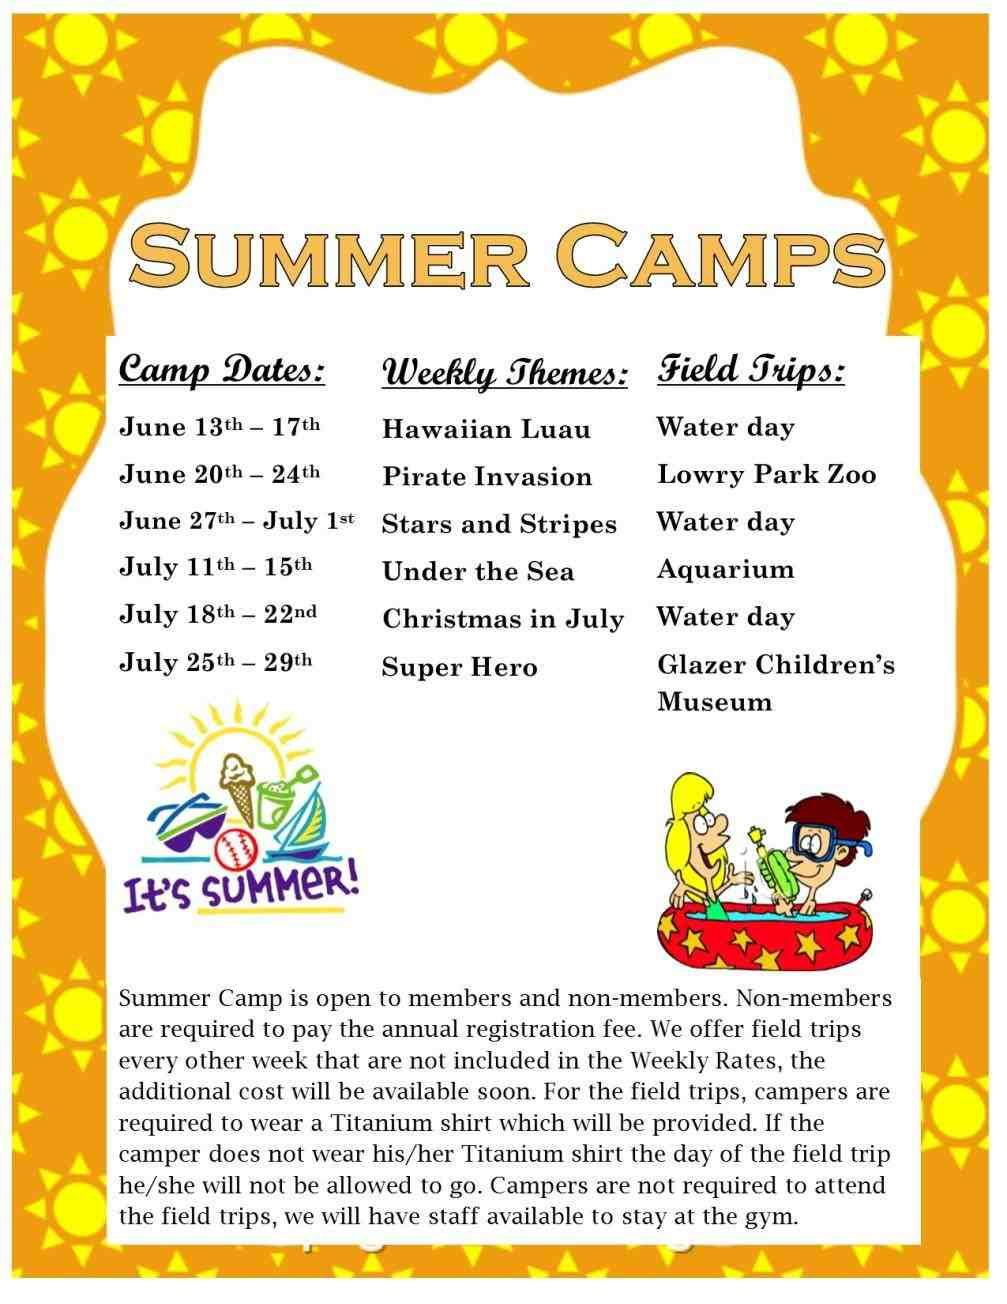 summer camp theme ideas | summer program | camping, camping hacks